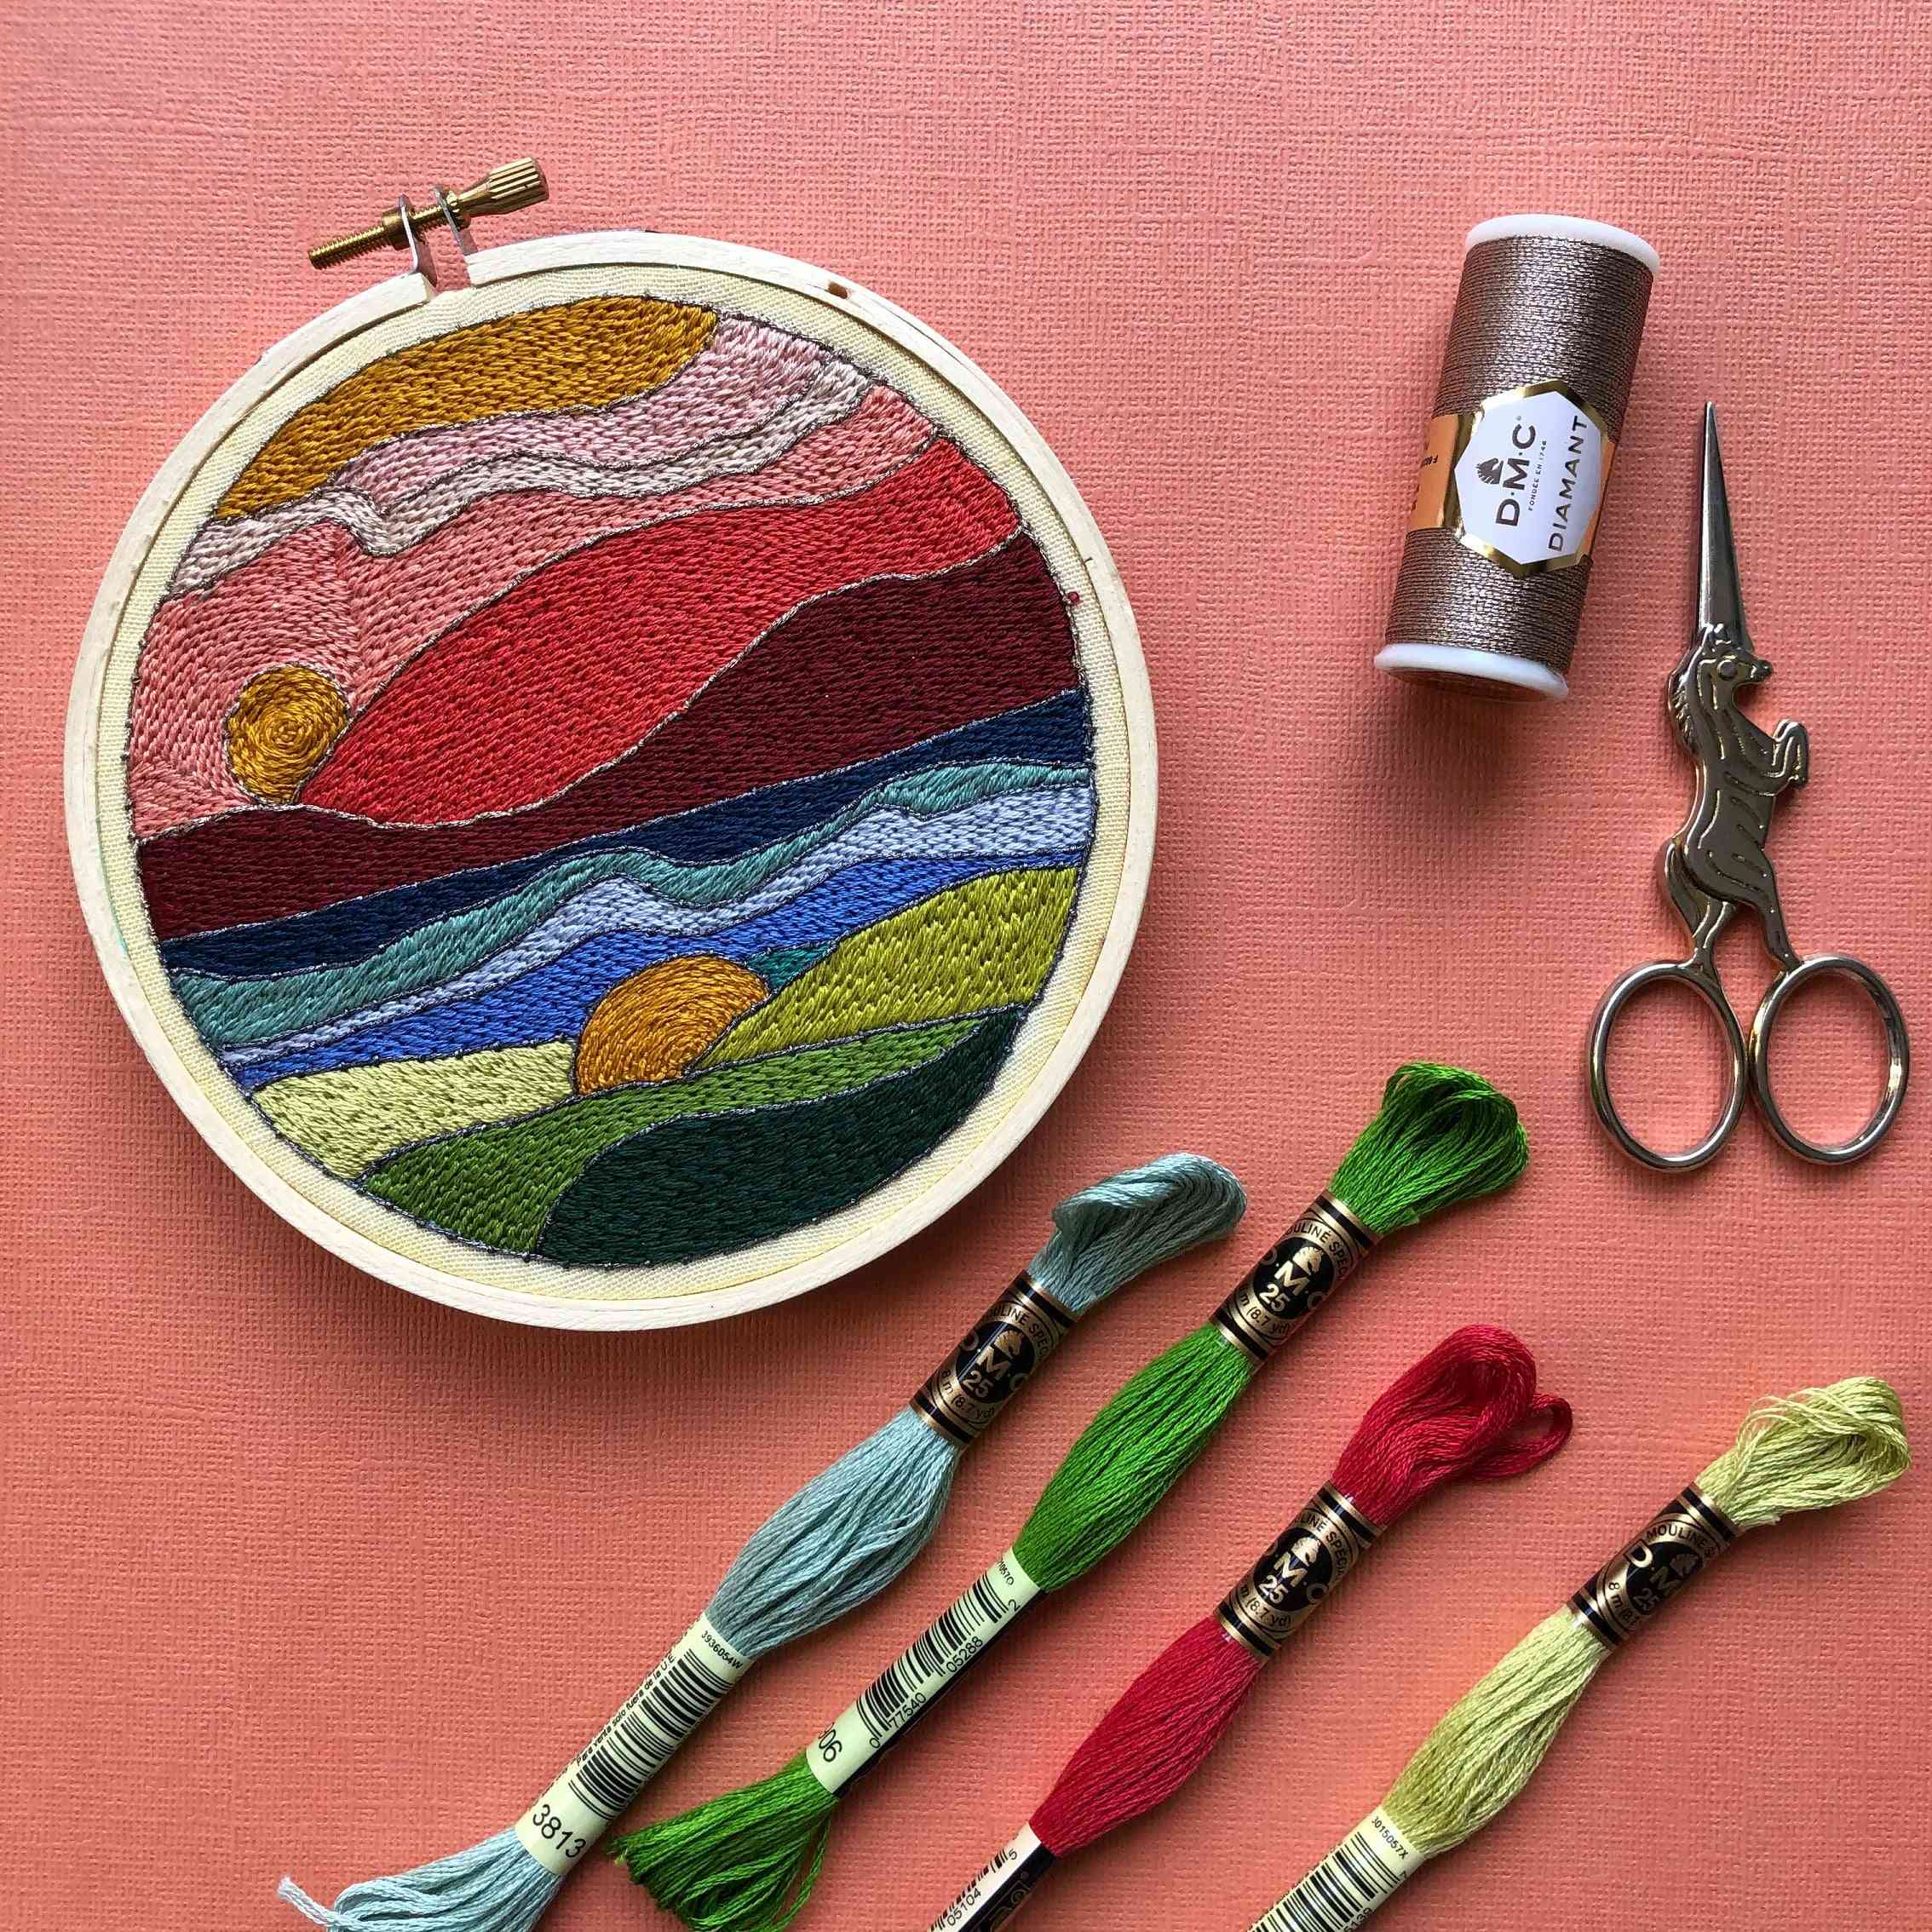 Stained Glass Landscape Diy Beginner Embroidery Kit